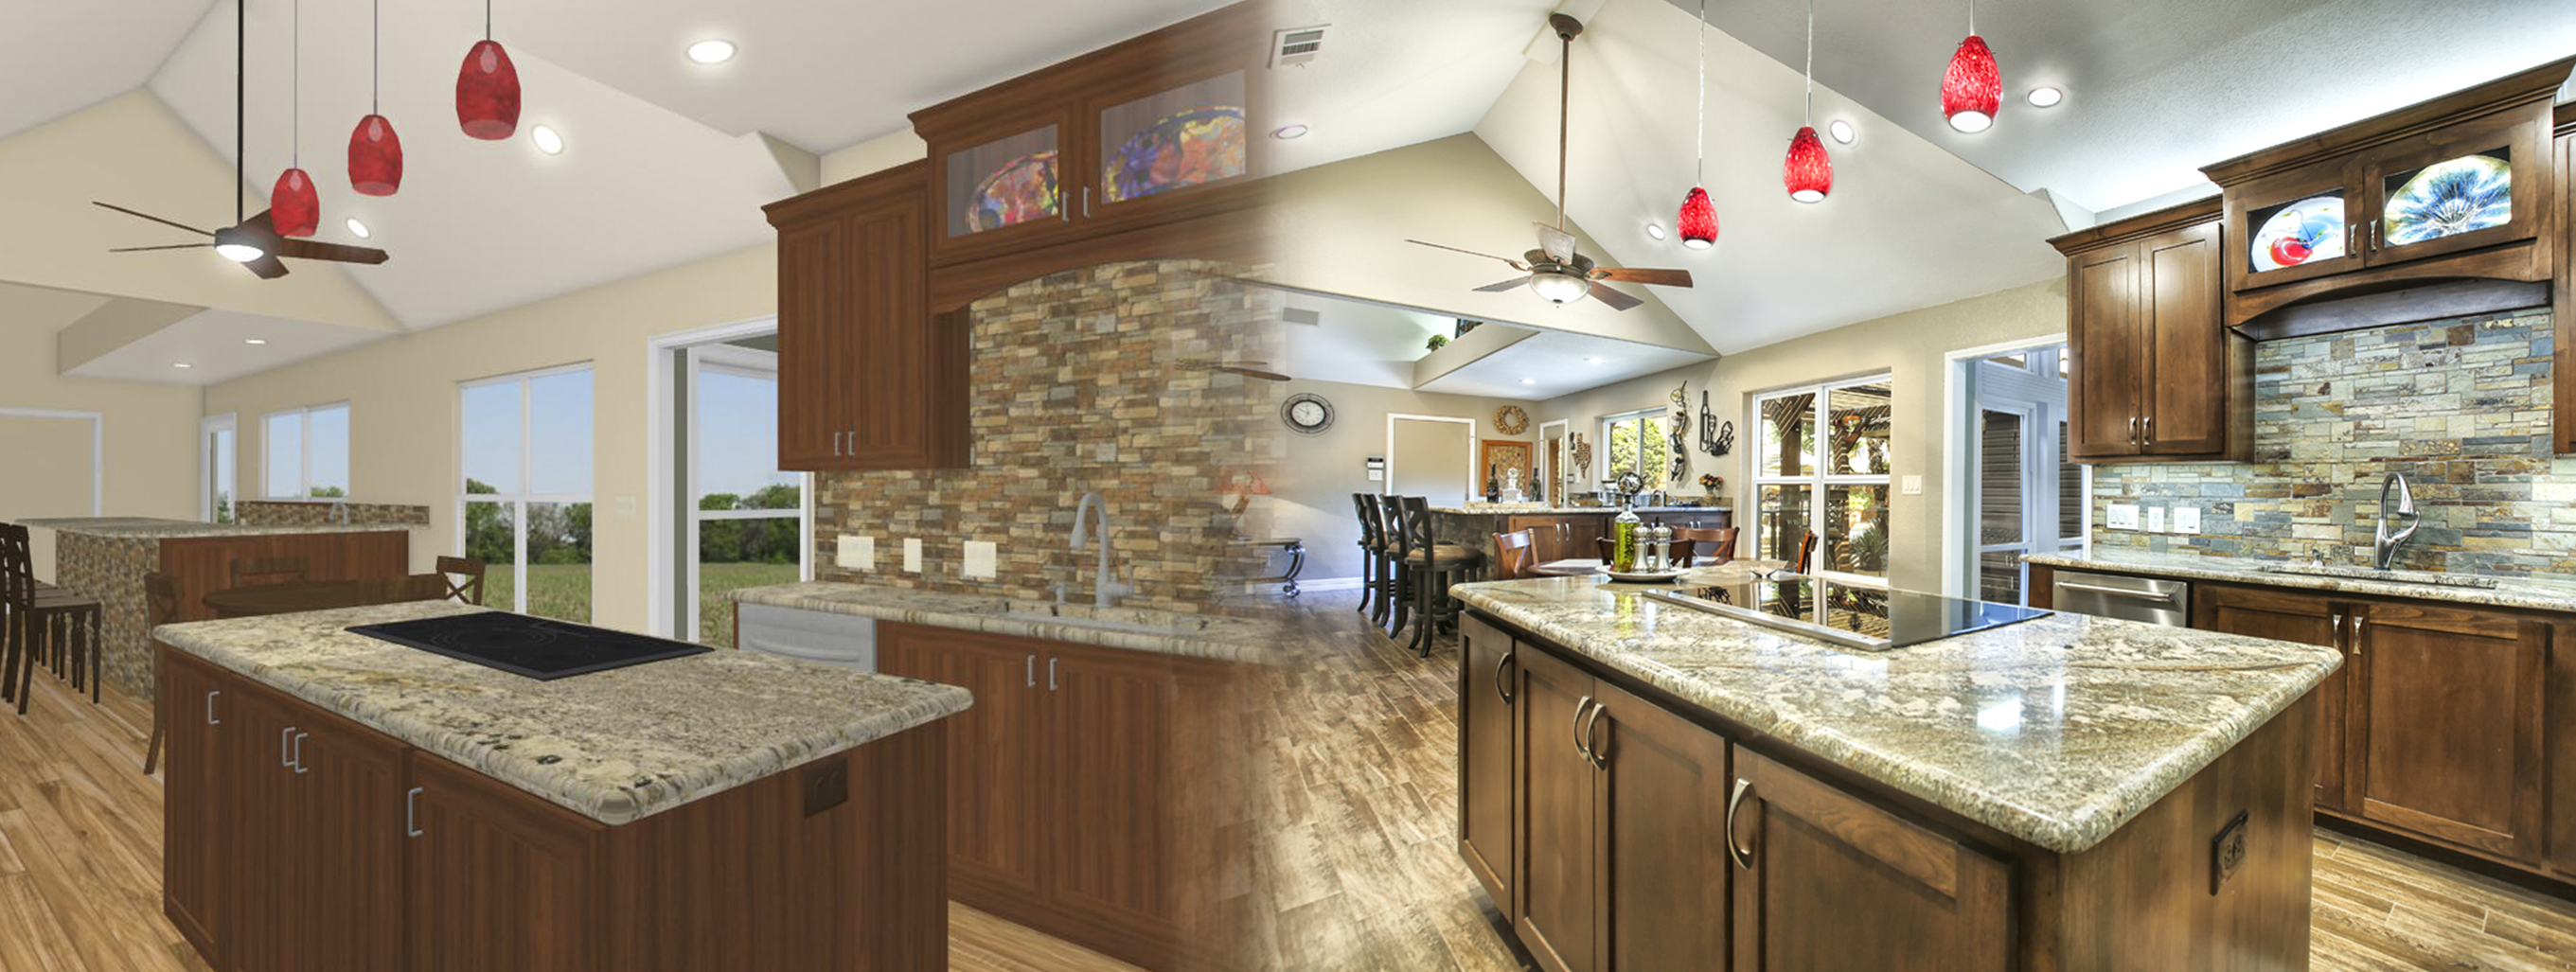 3 Truths About The Design Phase Of Your Home Remodel With